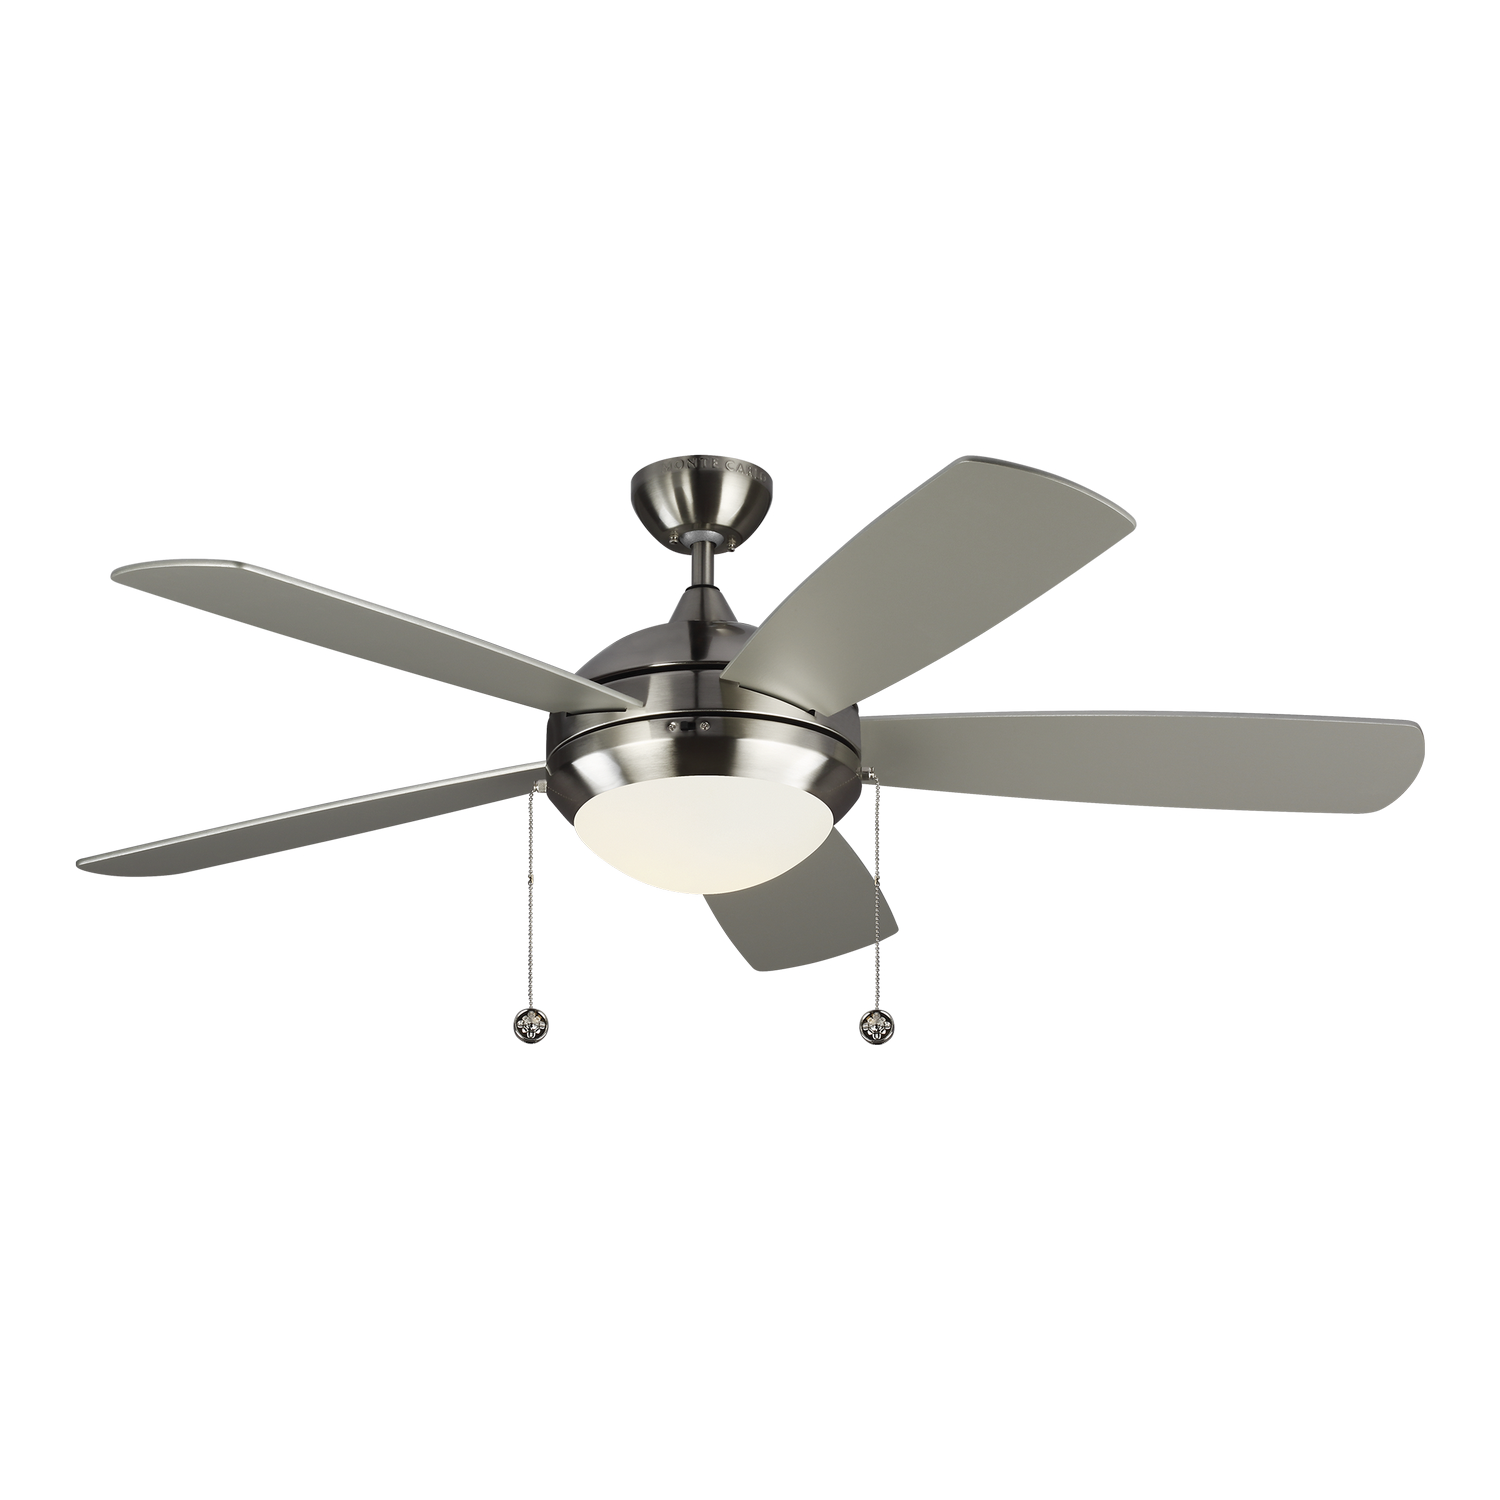 52 inchCeiling Fan from the Discus Classic collection by Monte Carlo 5DIC52BSD V1